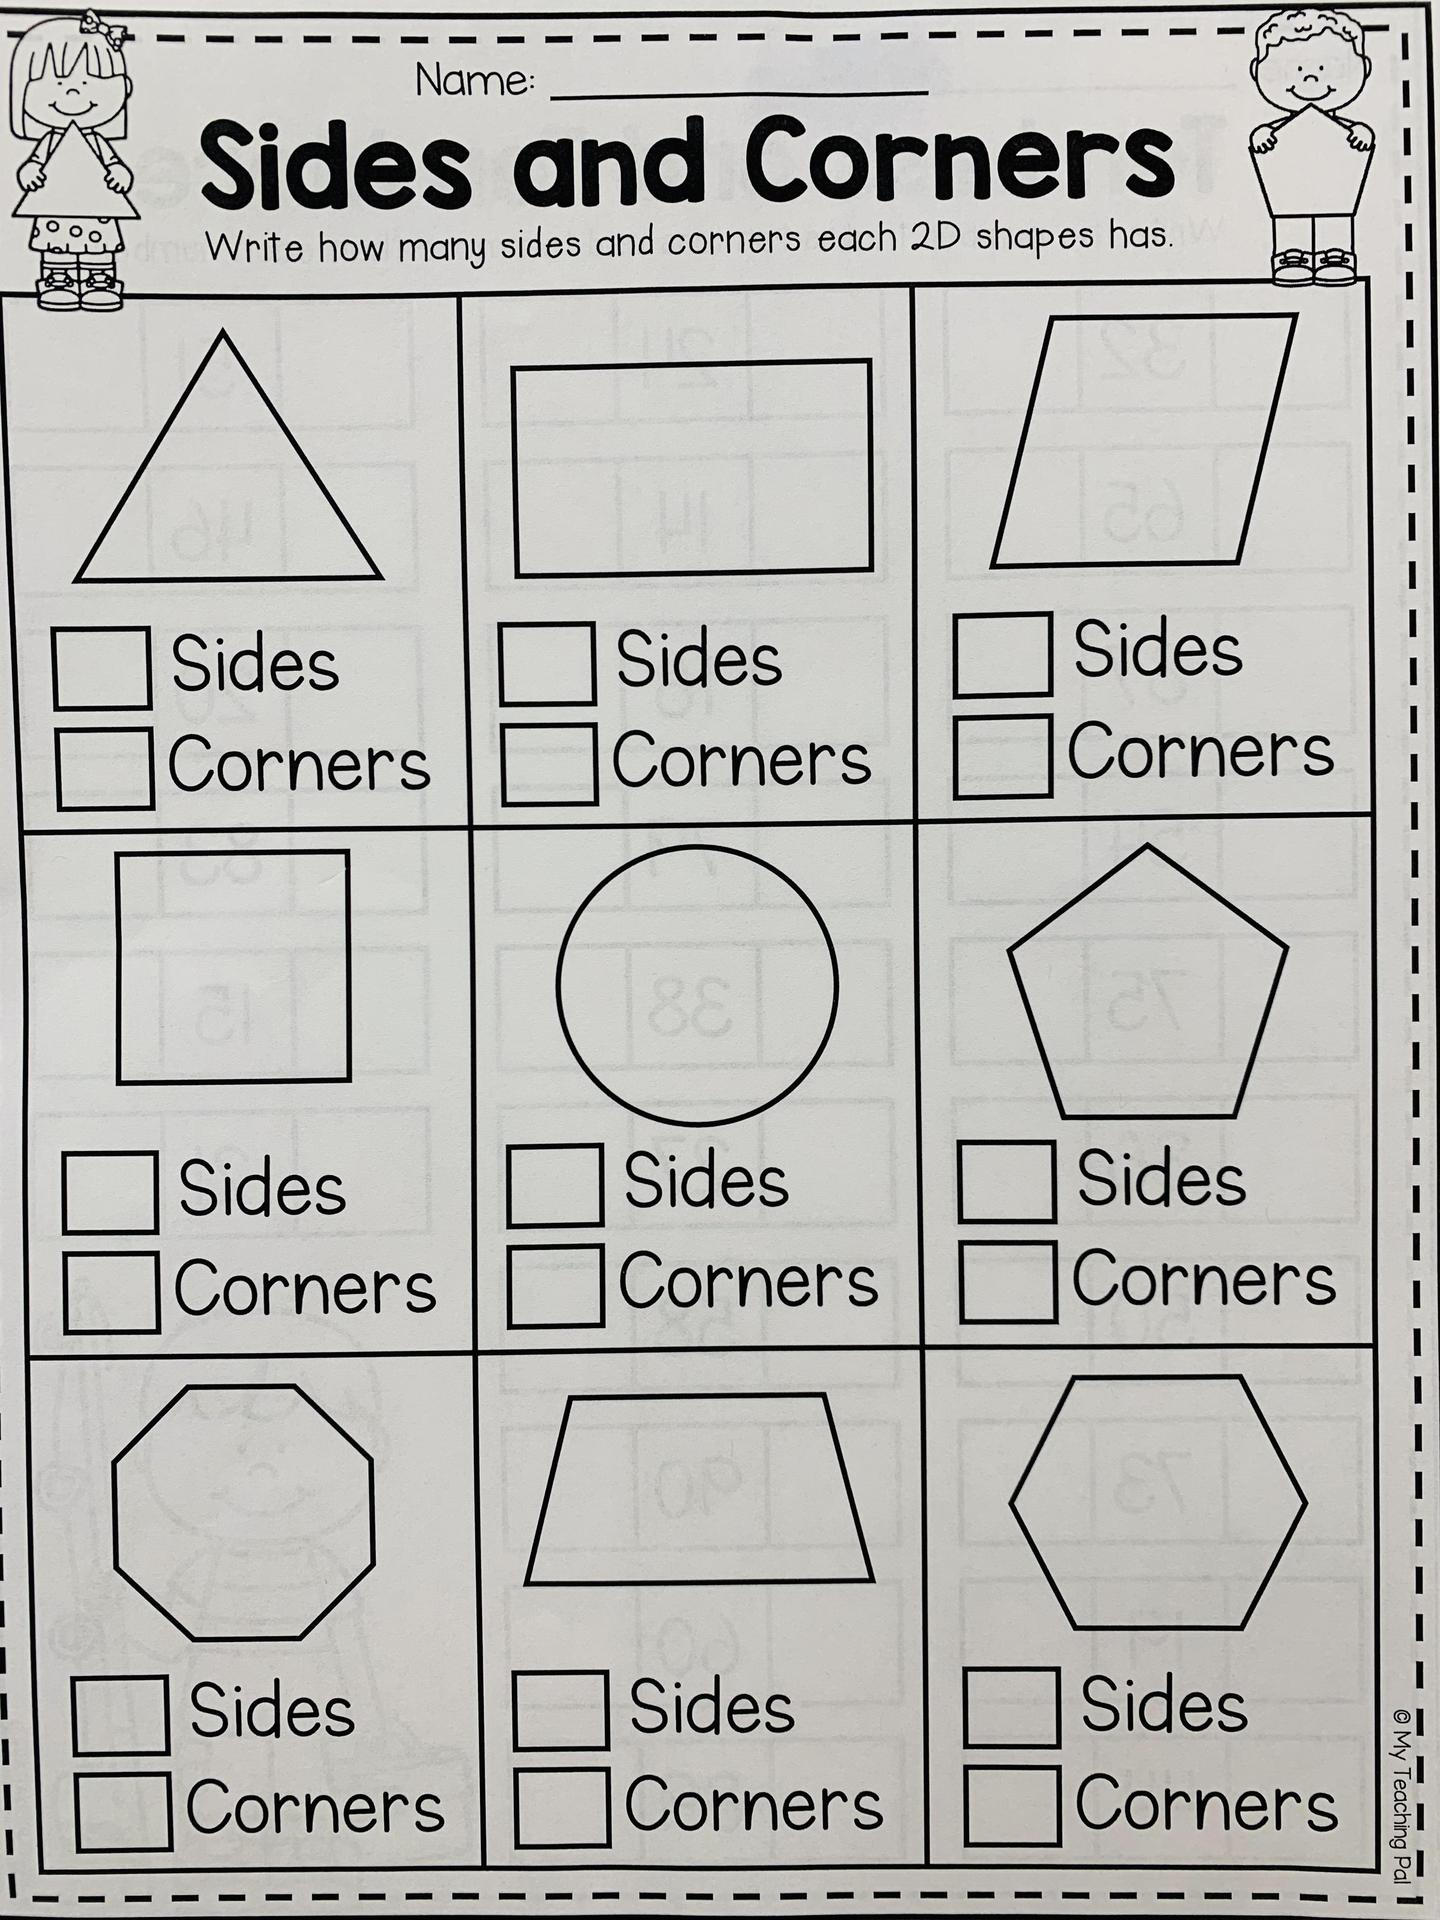 Sides and corners